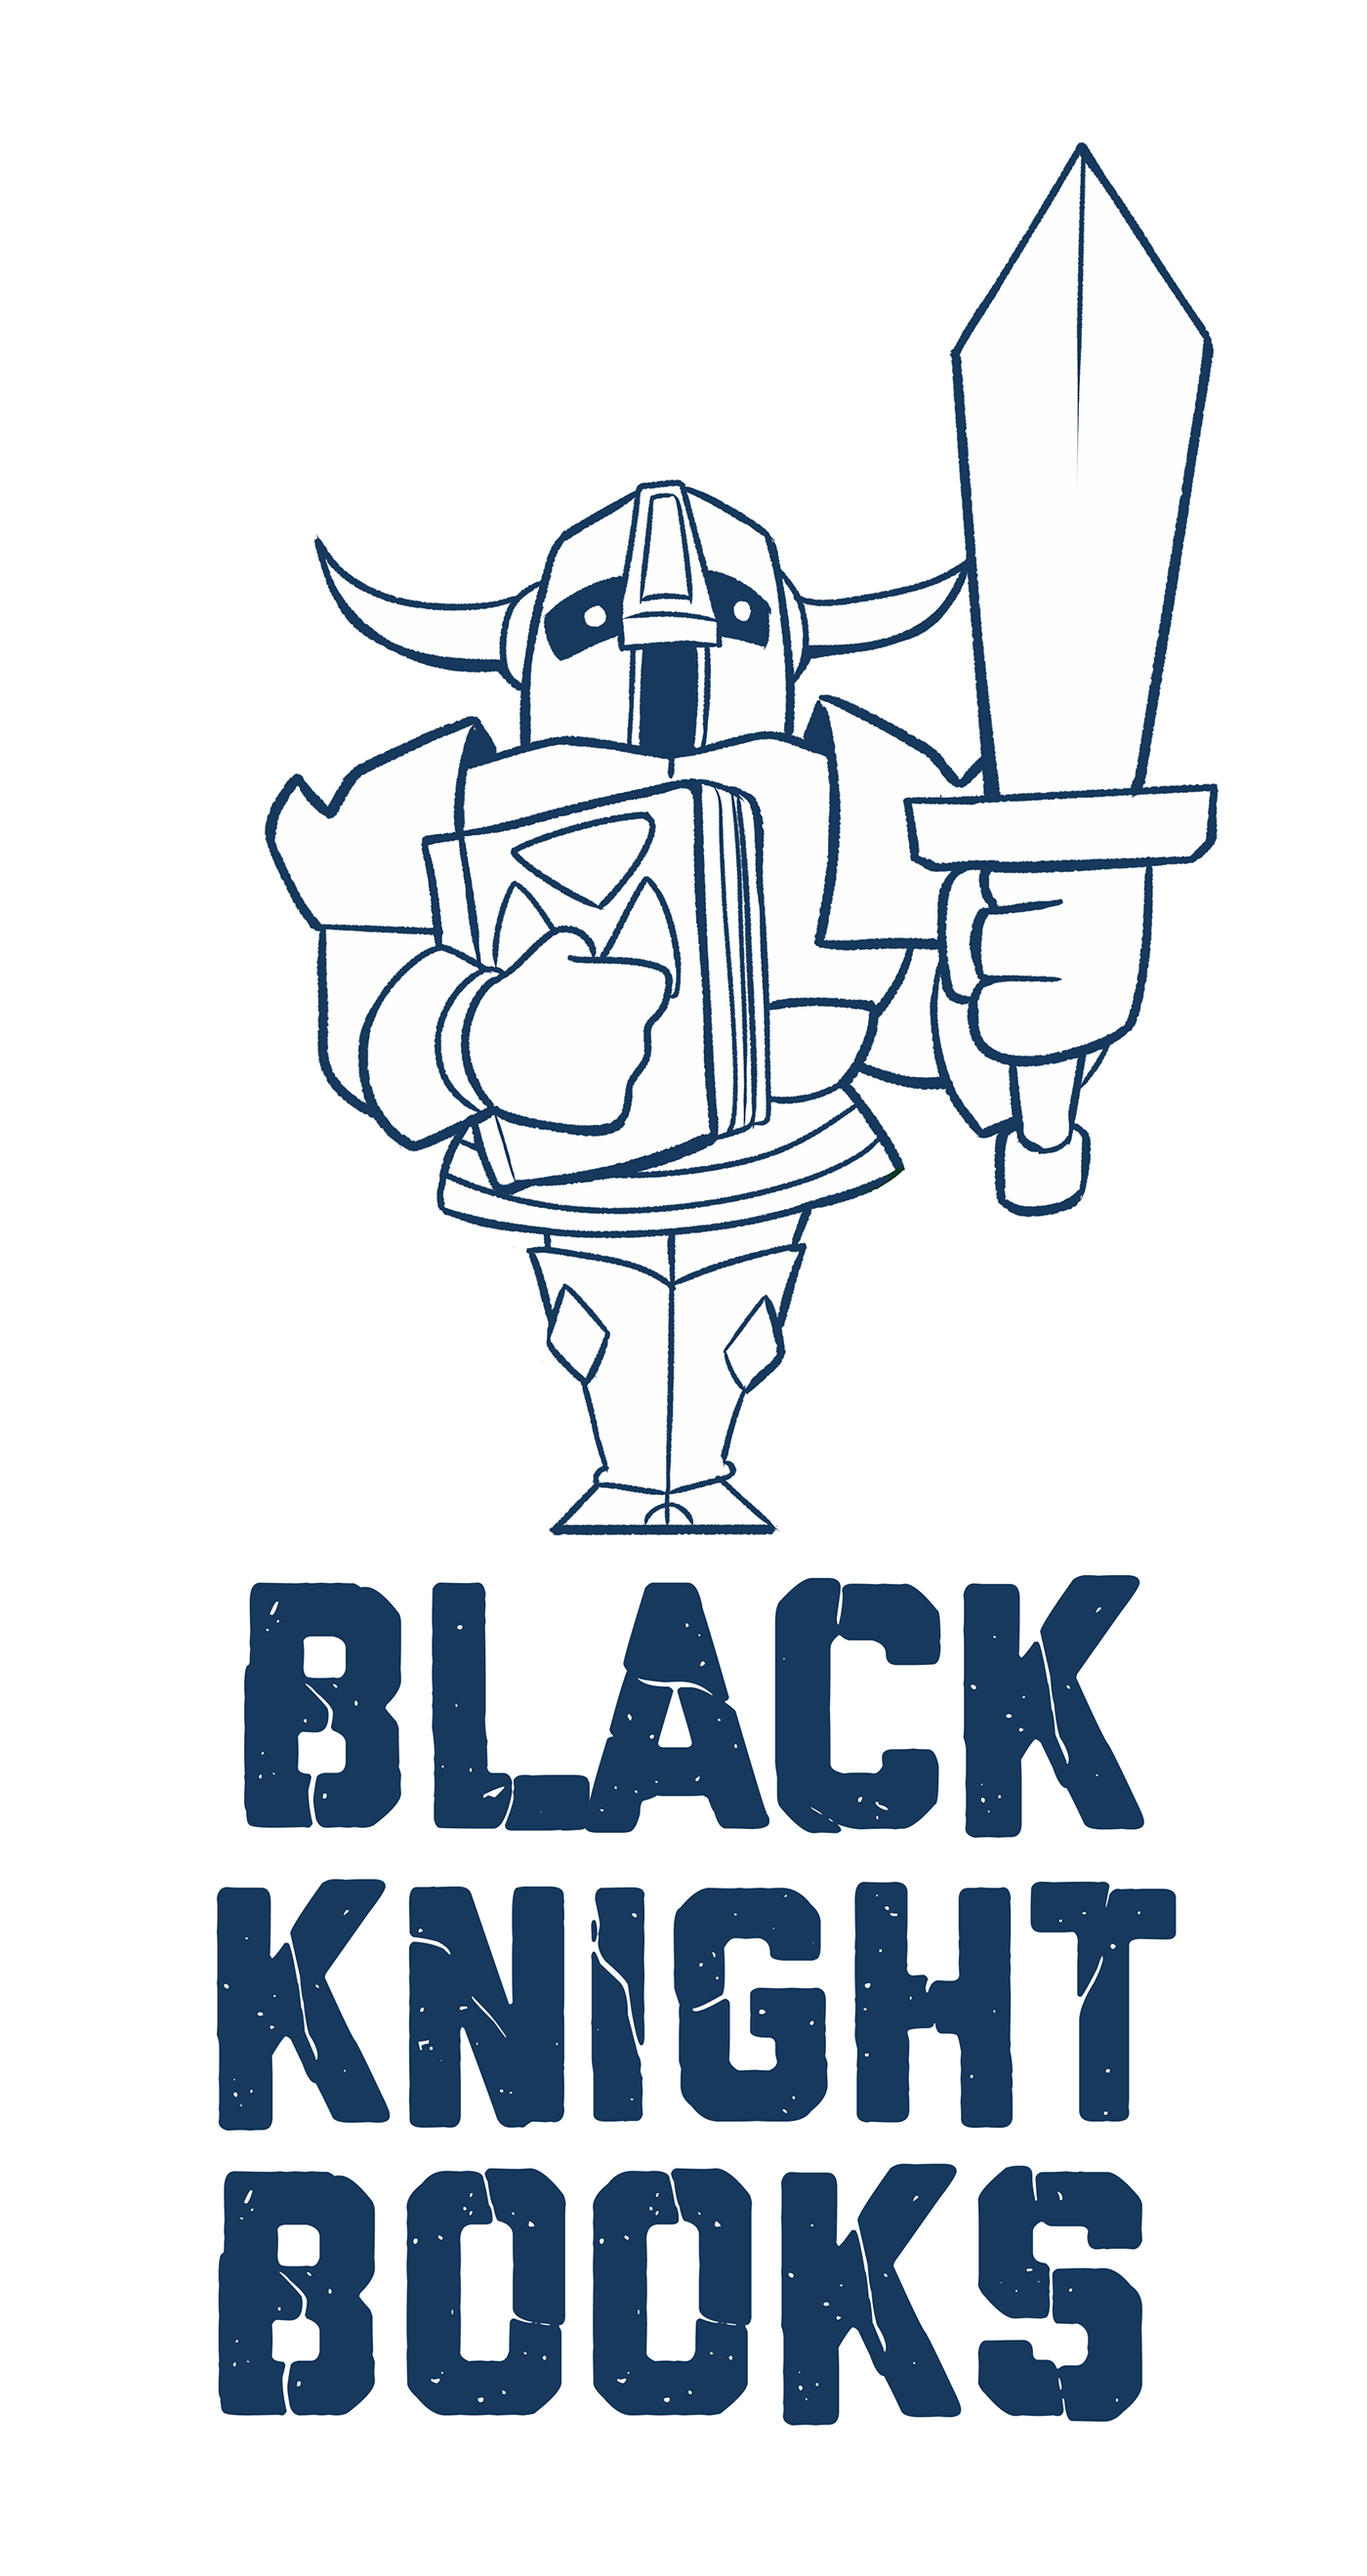 Book spine cartoon png. Black knight books on